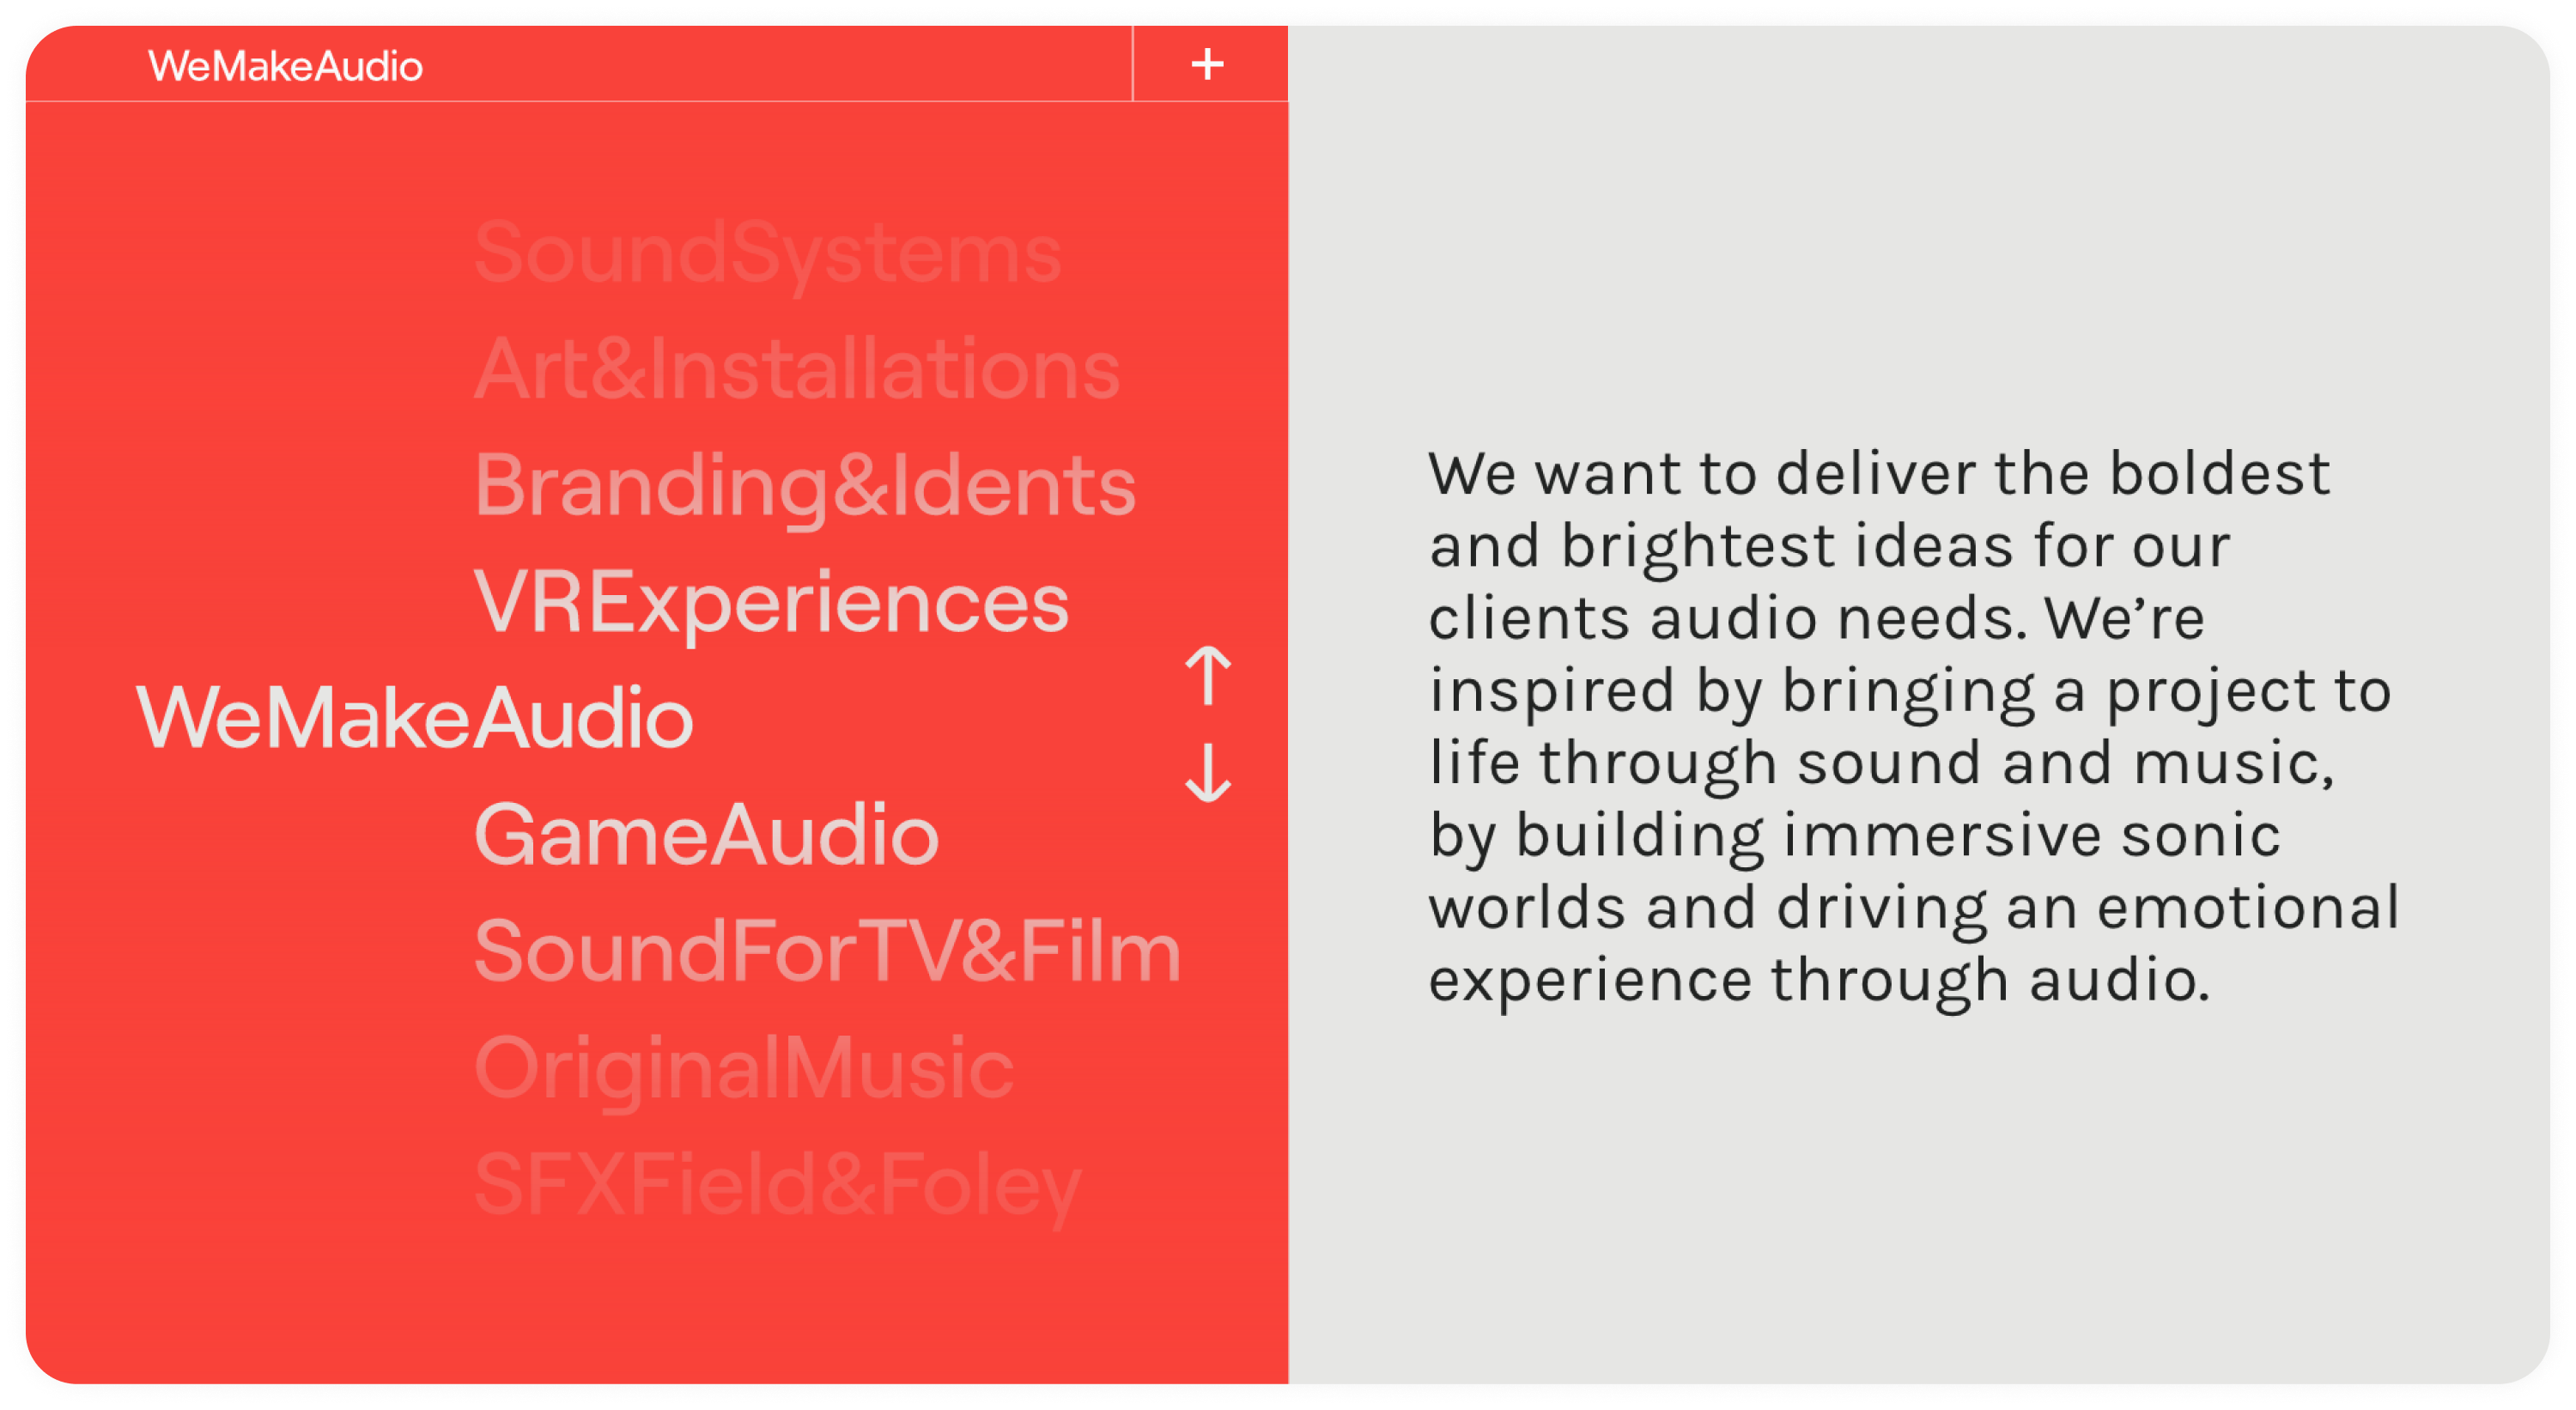 WeMakeAudio CRO project - Website and branding - how we displayed the clients full offering